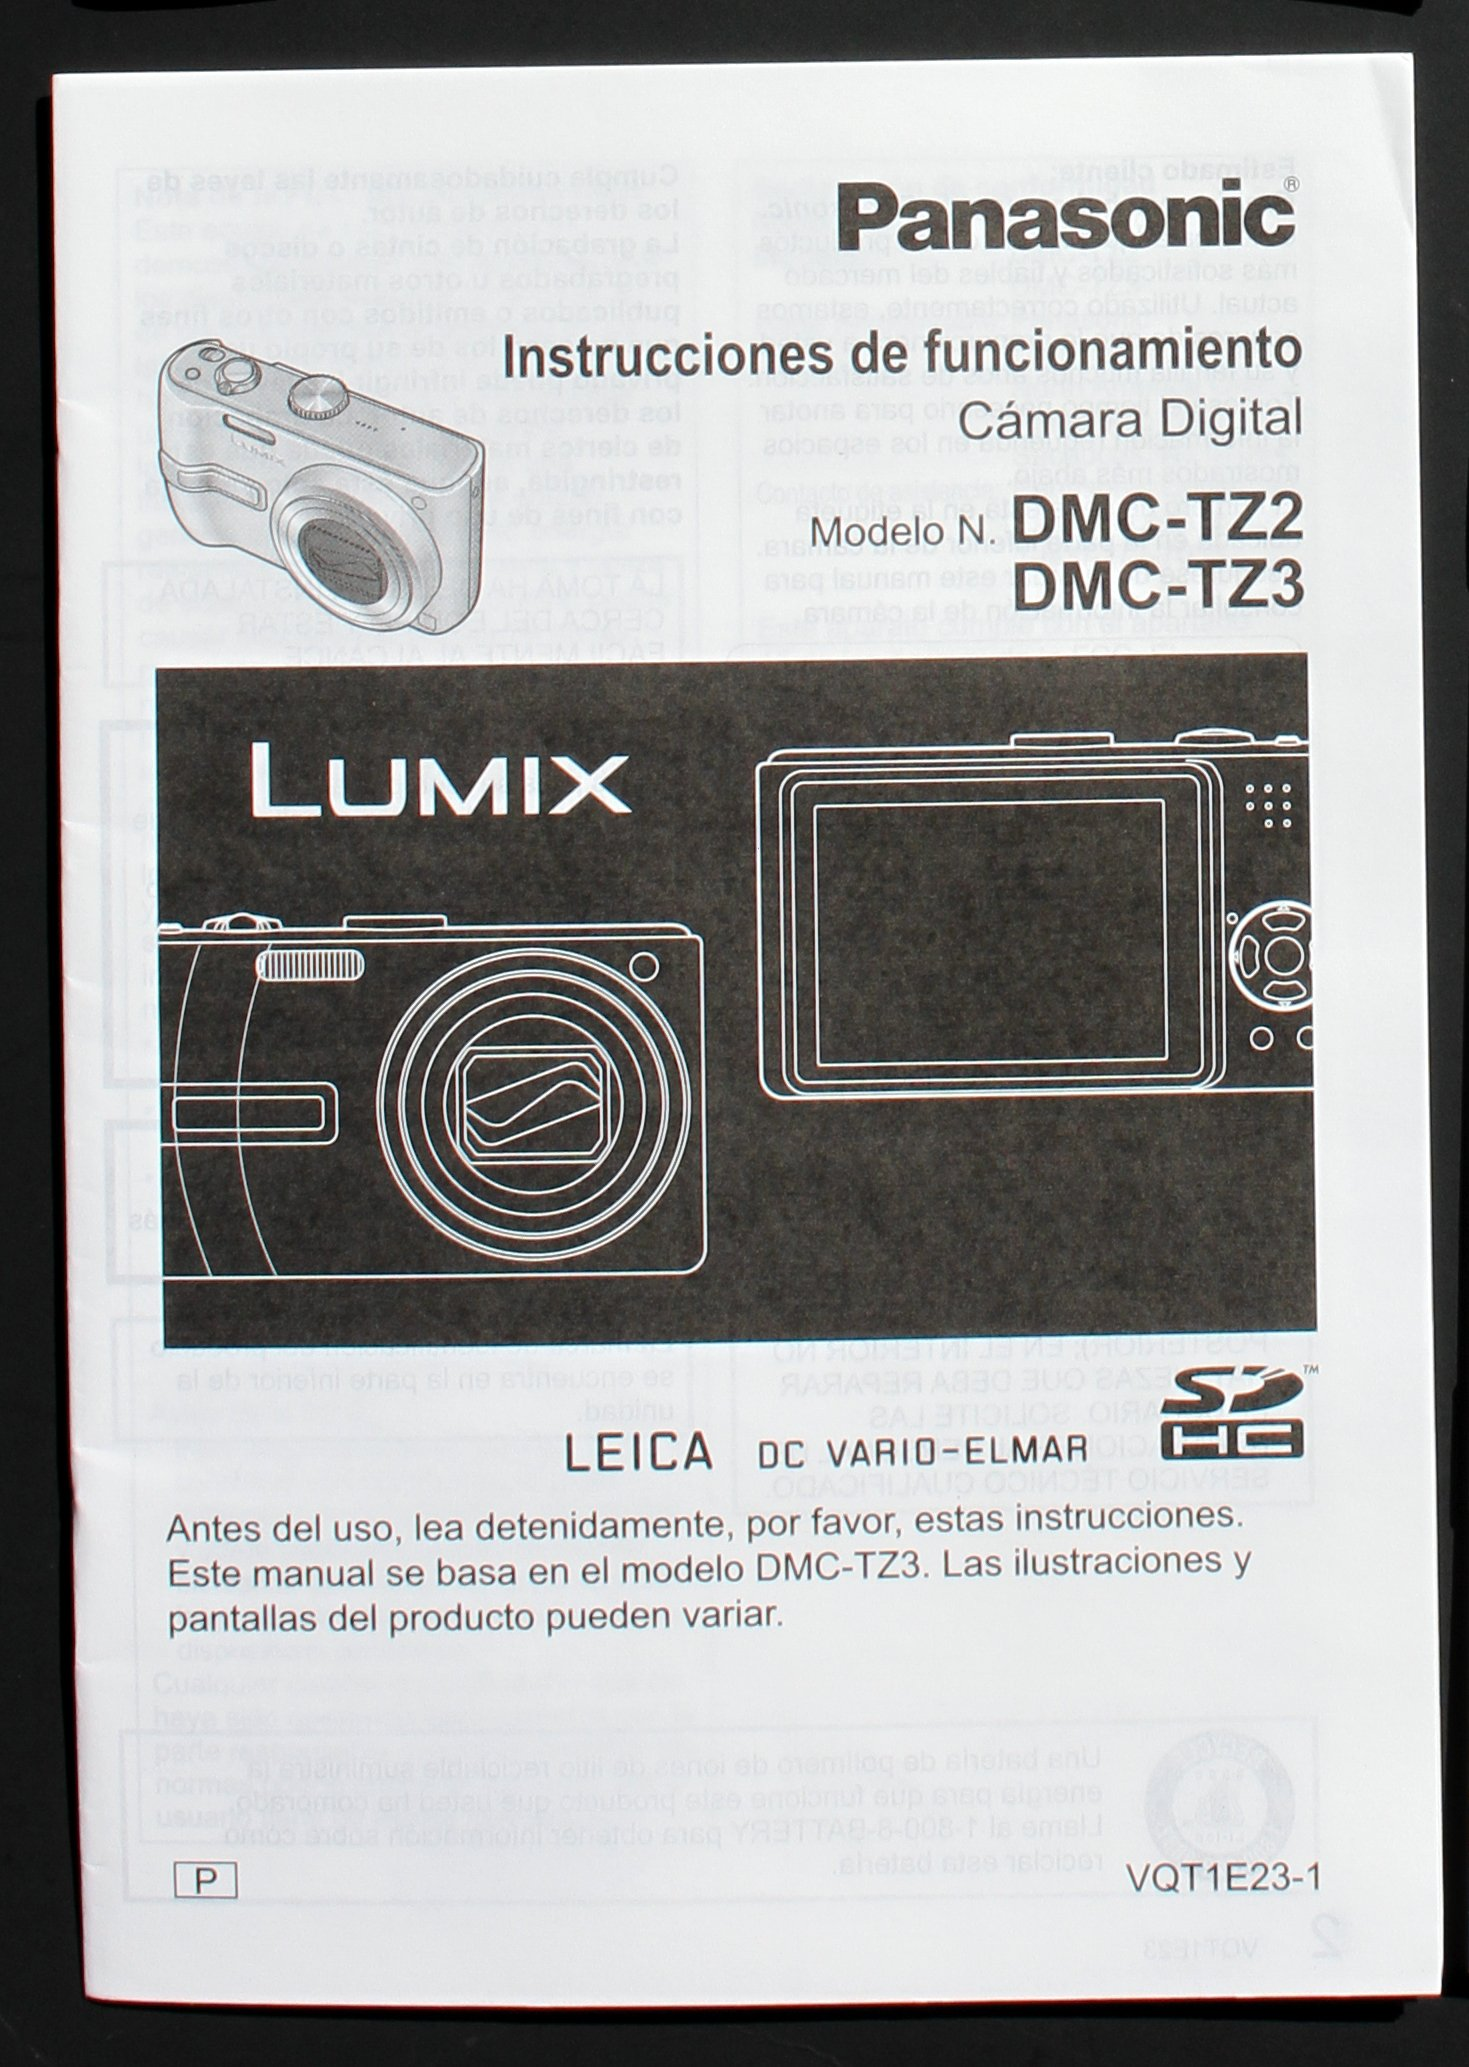 lumix tz3 manual various owner manual guide u2022 rh justk co Panasonic Lumix DMC-GF2 Panasonic DMC TZ3 Charger